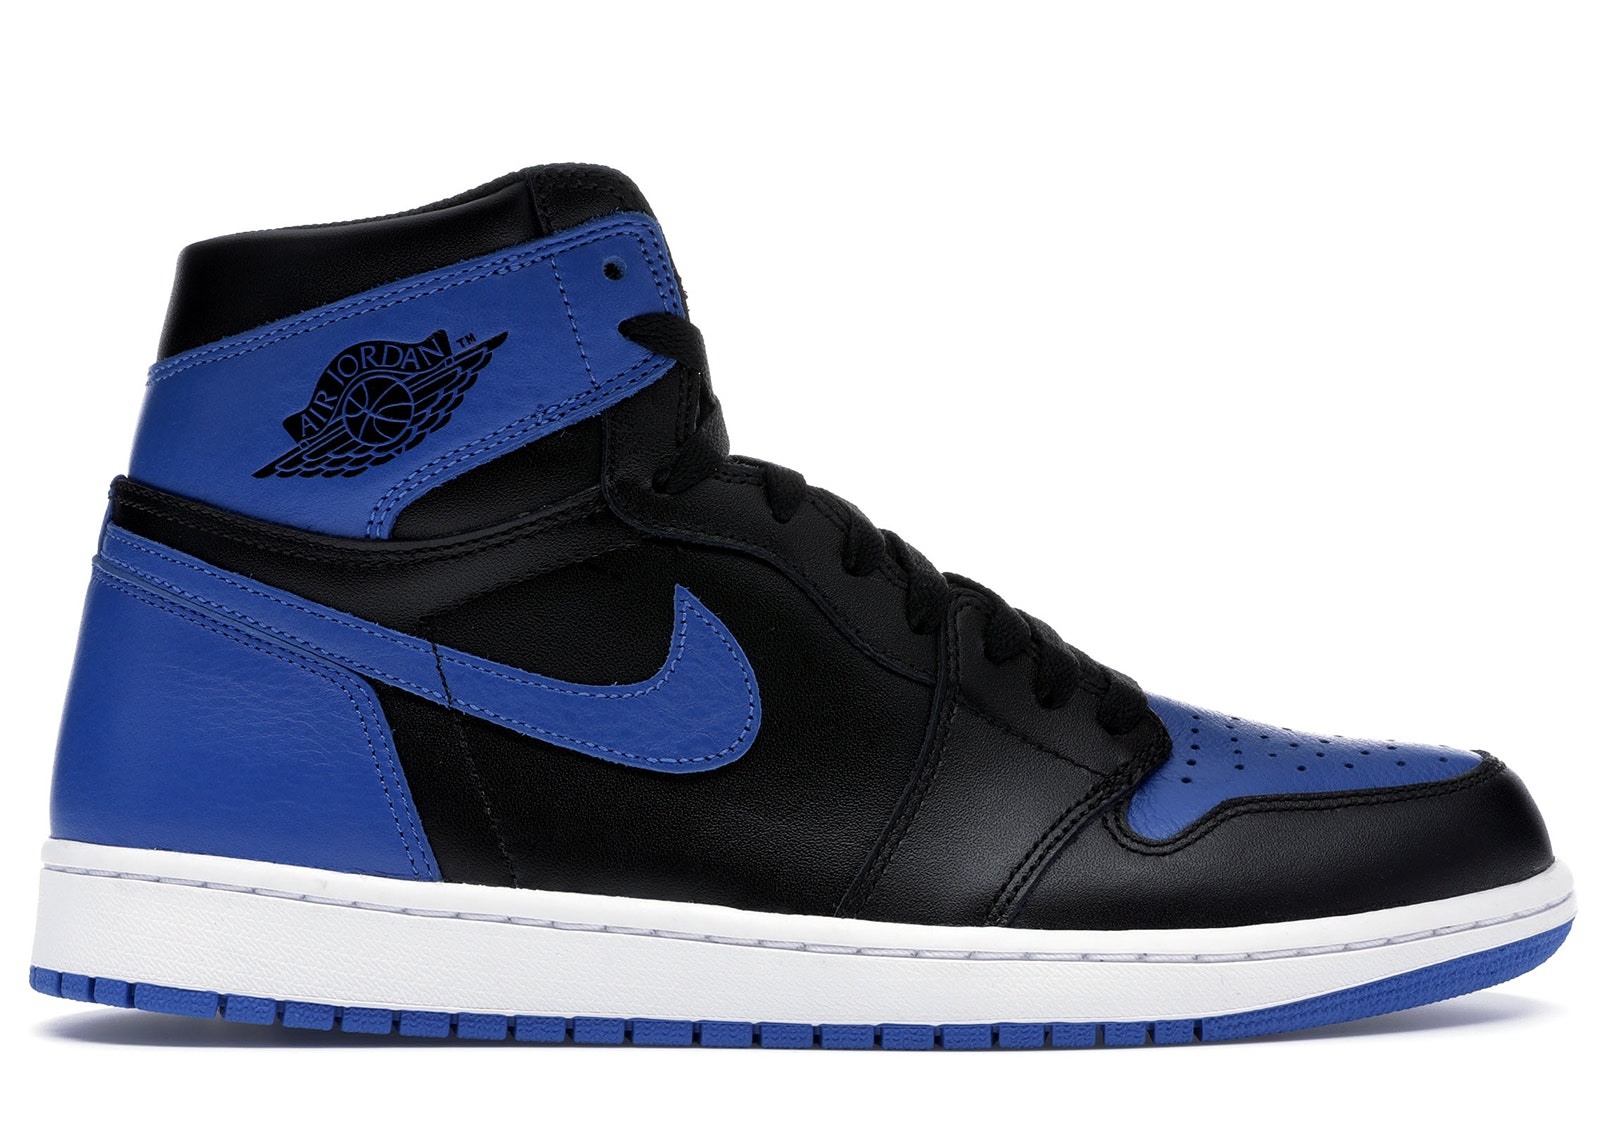 Jordan 1 Retro Royal (2017)